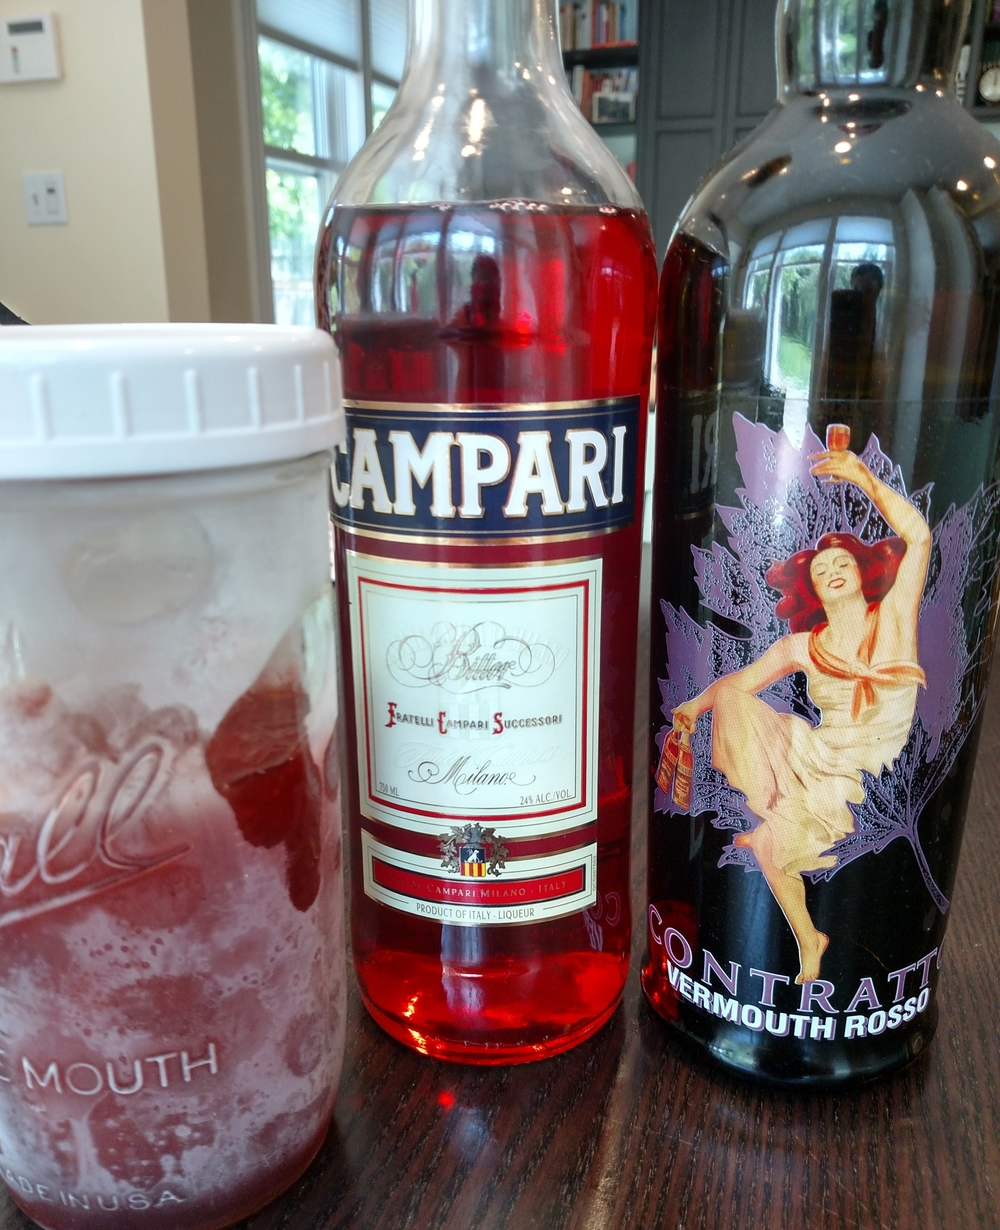 Negronis. In the freezer. Because brilliance. And summer. And cocktails.